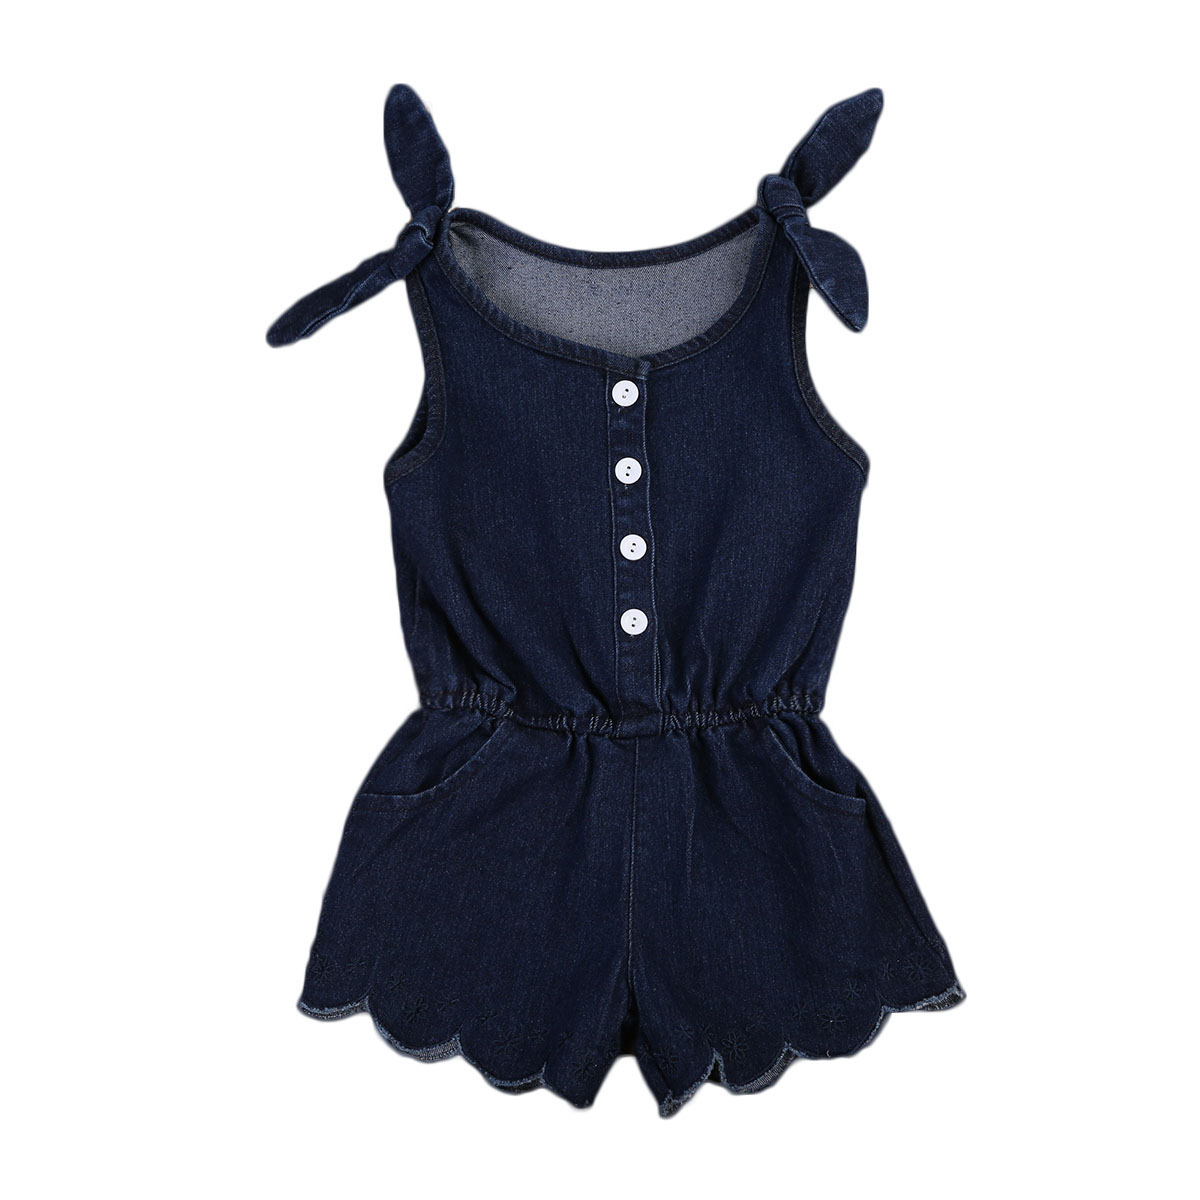 Newborn Infant Baby Girl Sleeveless Denim Romper Jumpsuit Toddler One-Pieces Outfits Summer Sunsuit Clothes baby clothing summer infant newborn baby romper short sleeve girl boys jumpsuit new born baby clothes